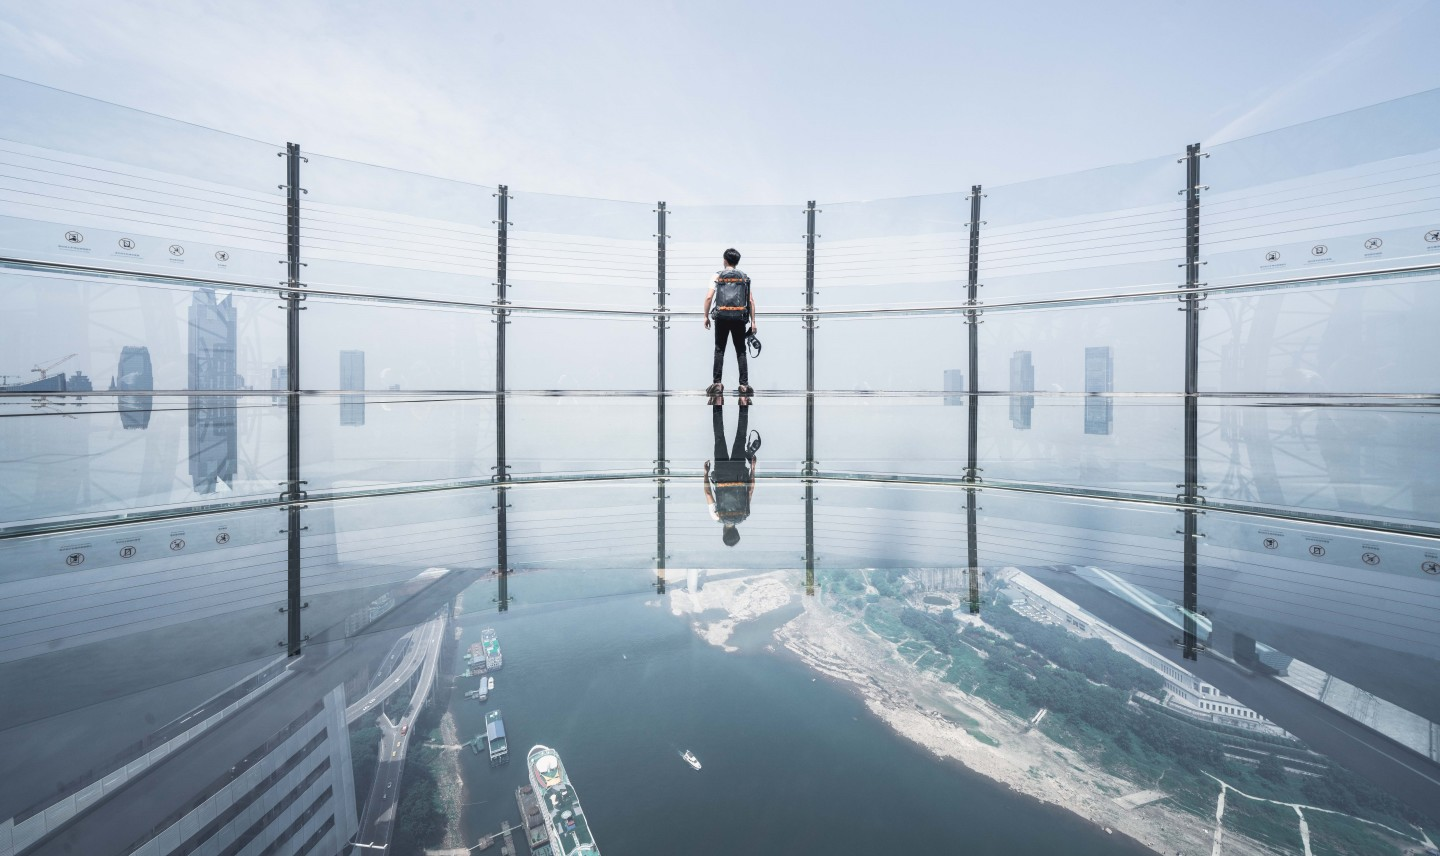 The Crystal's glass-bottomed observation deck offers views of Chongqing and of the Yangtze and Jailing rivers meeting